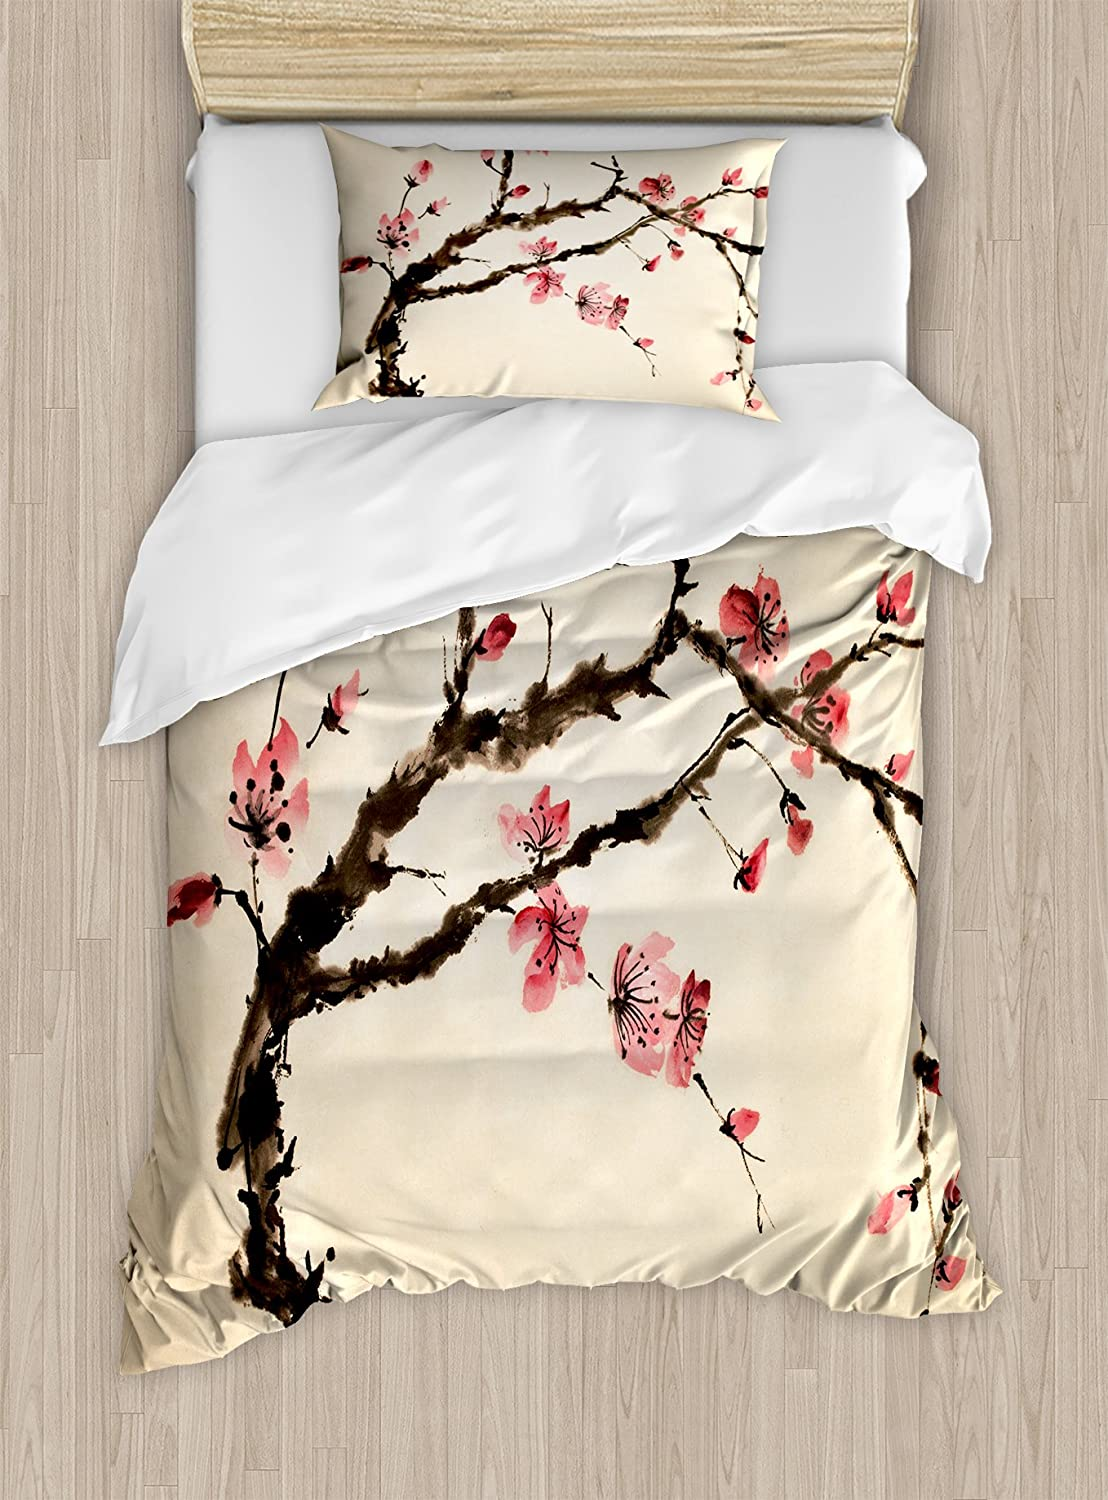 Ambesonne Japanese Duvet Cover Set, Traditional Chinese Paint of Figural Tree with Details Brushstroke Effects Print, Decorative 2 Piece Bedding Set with 1 Pillow Sham, Twin Size, Brown Pink